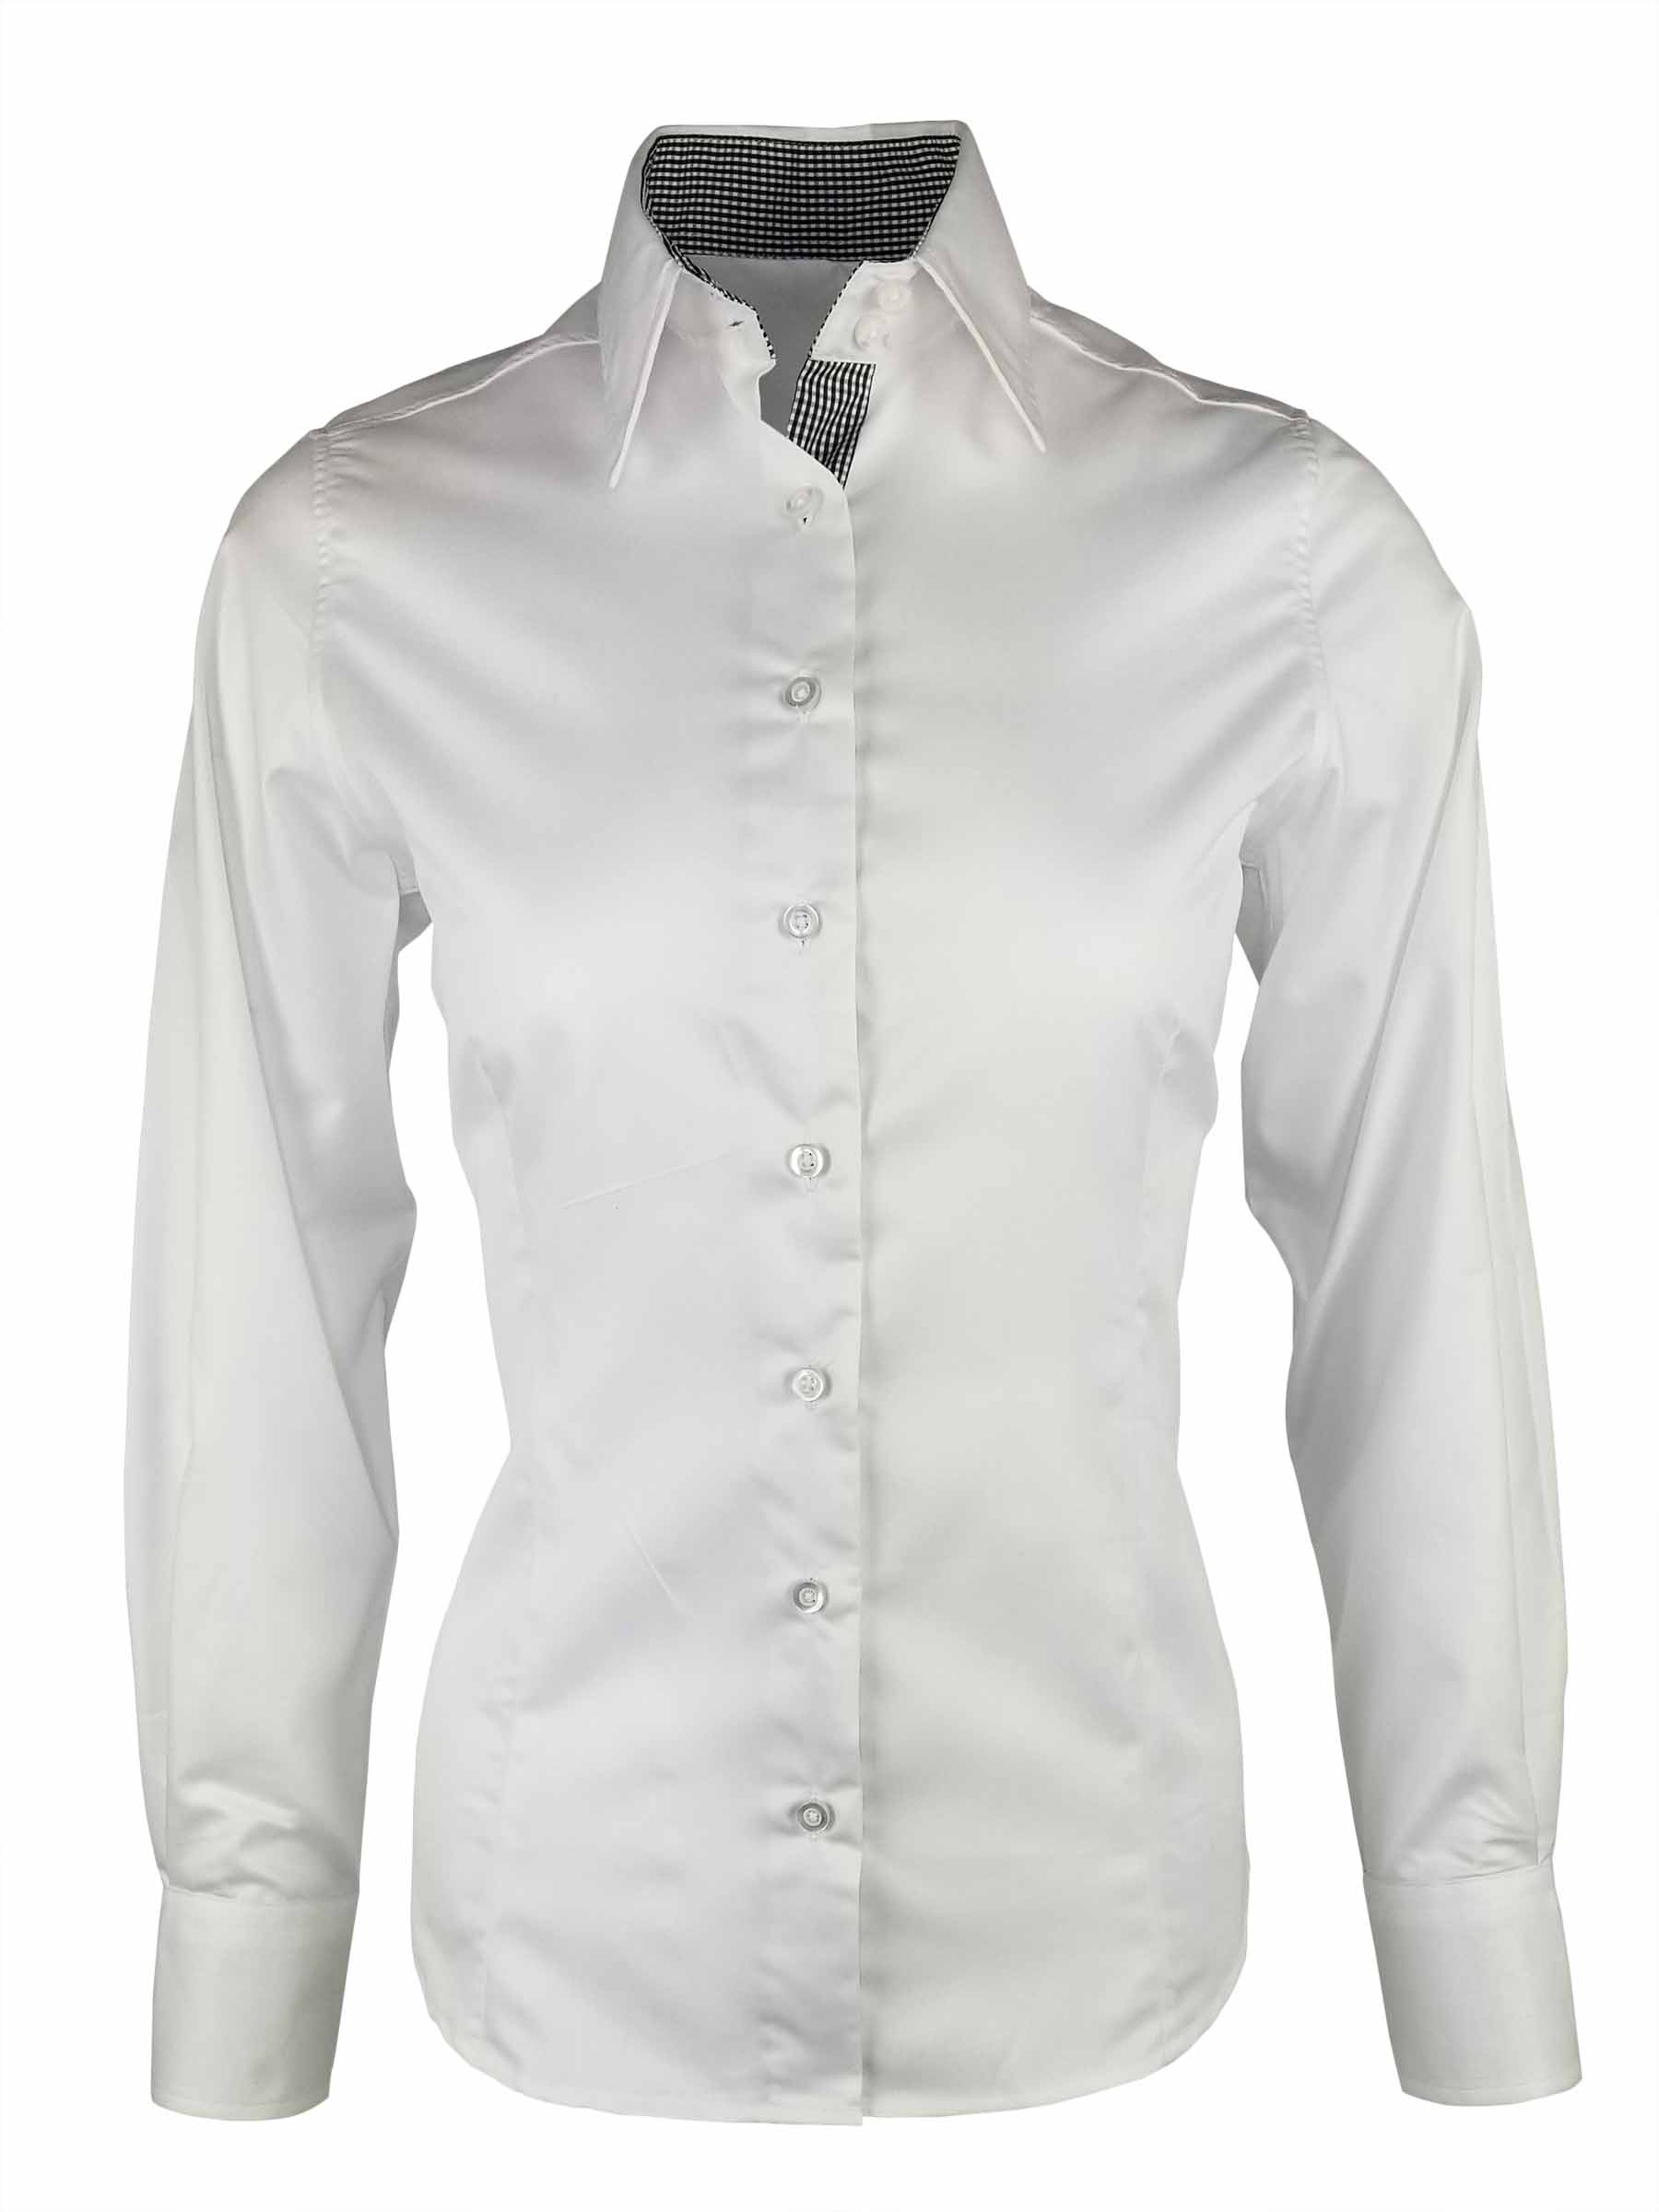 b039daeac63 Home Products Women s White with Black Check Contrast Shirt – Long Sleeve.  🔍. AddThis Sharing Buttons